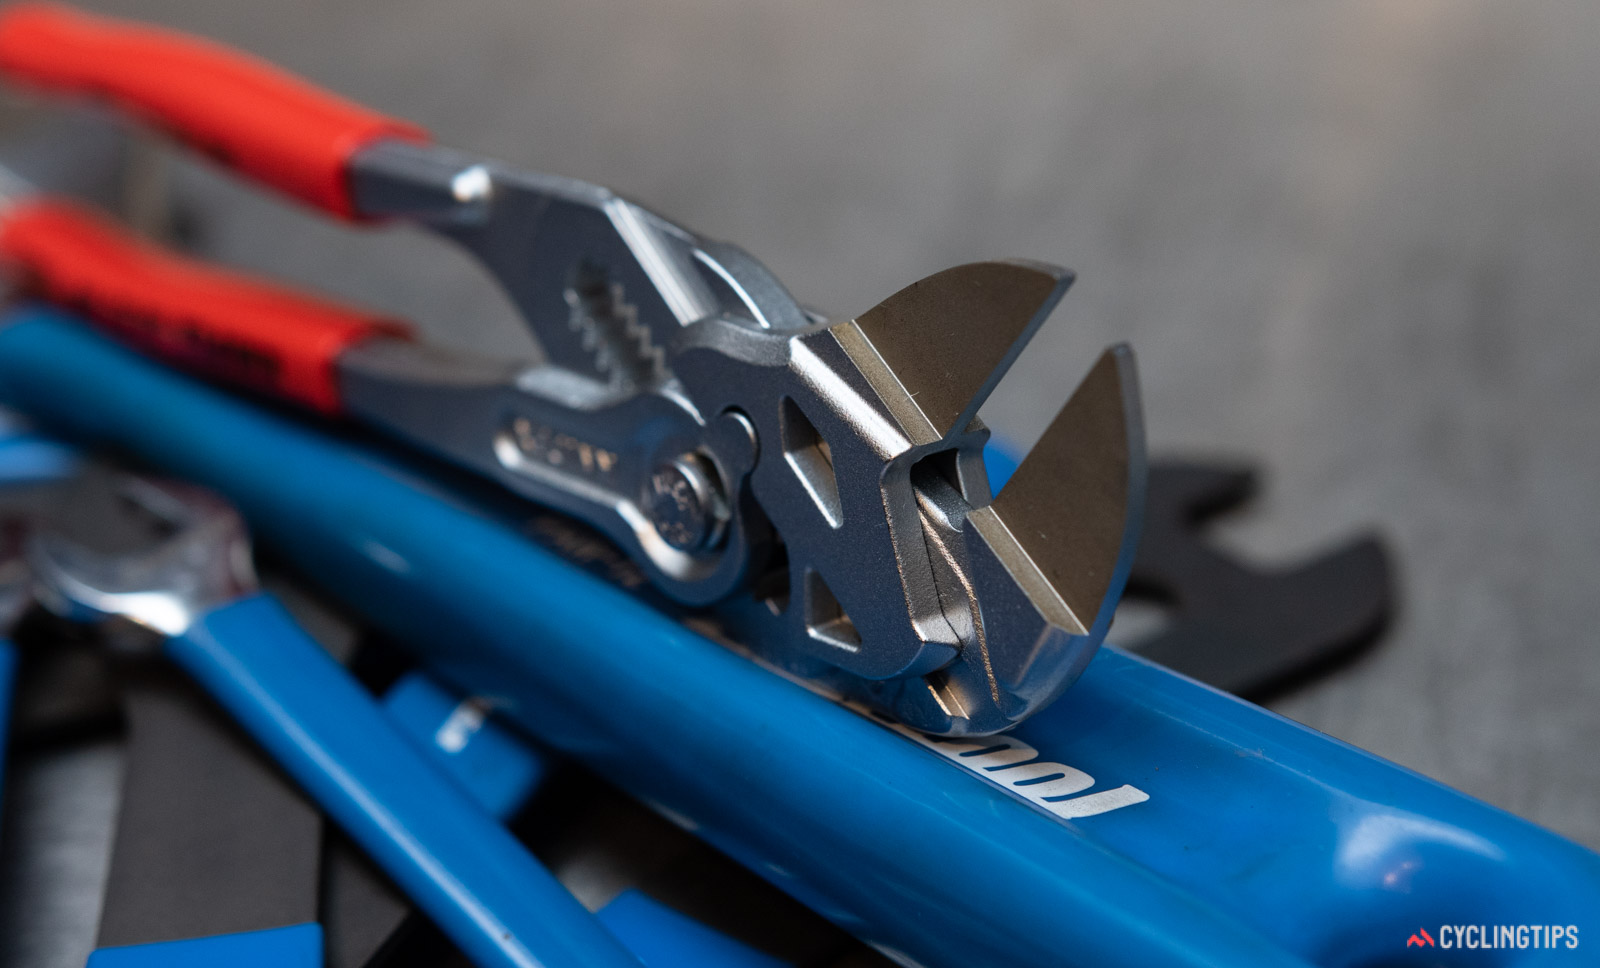 Knipex Pliers Wrench Mod - Cone Wrench tool